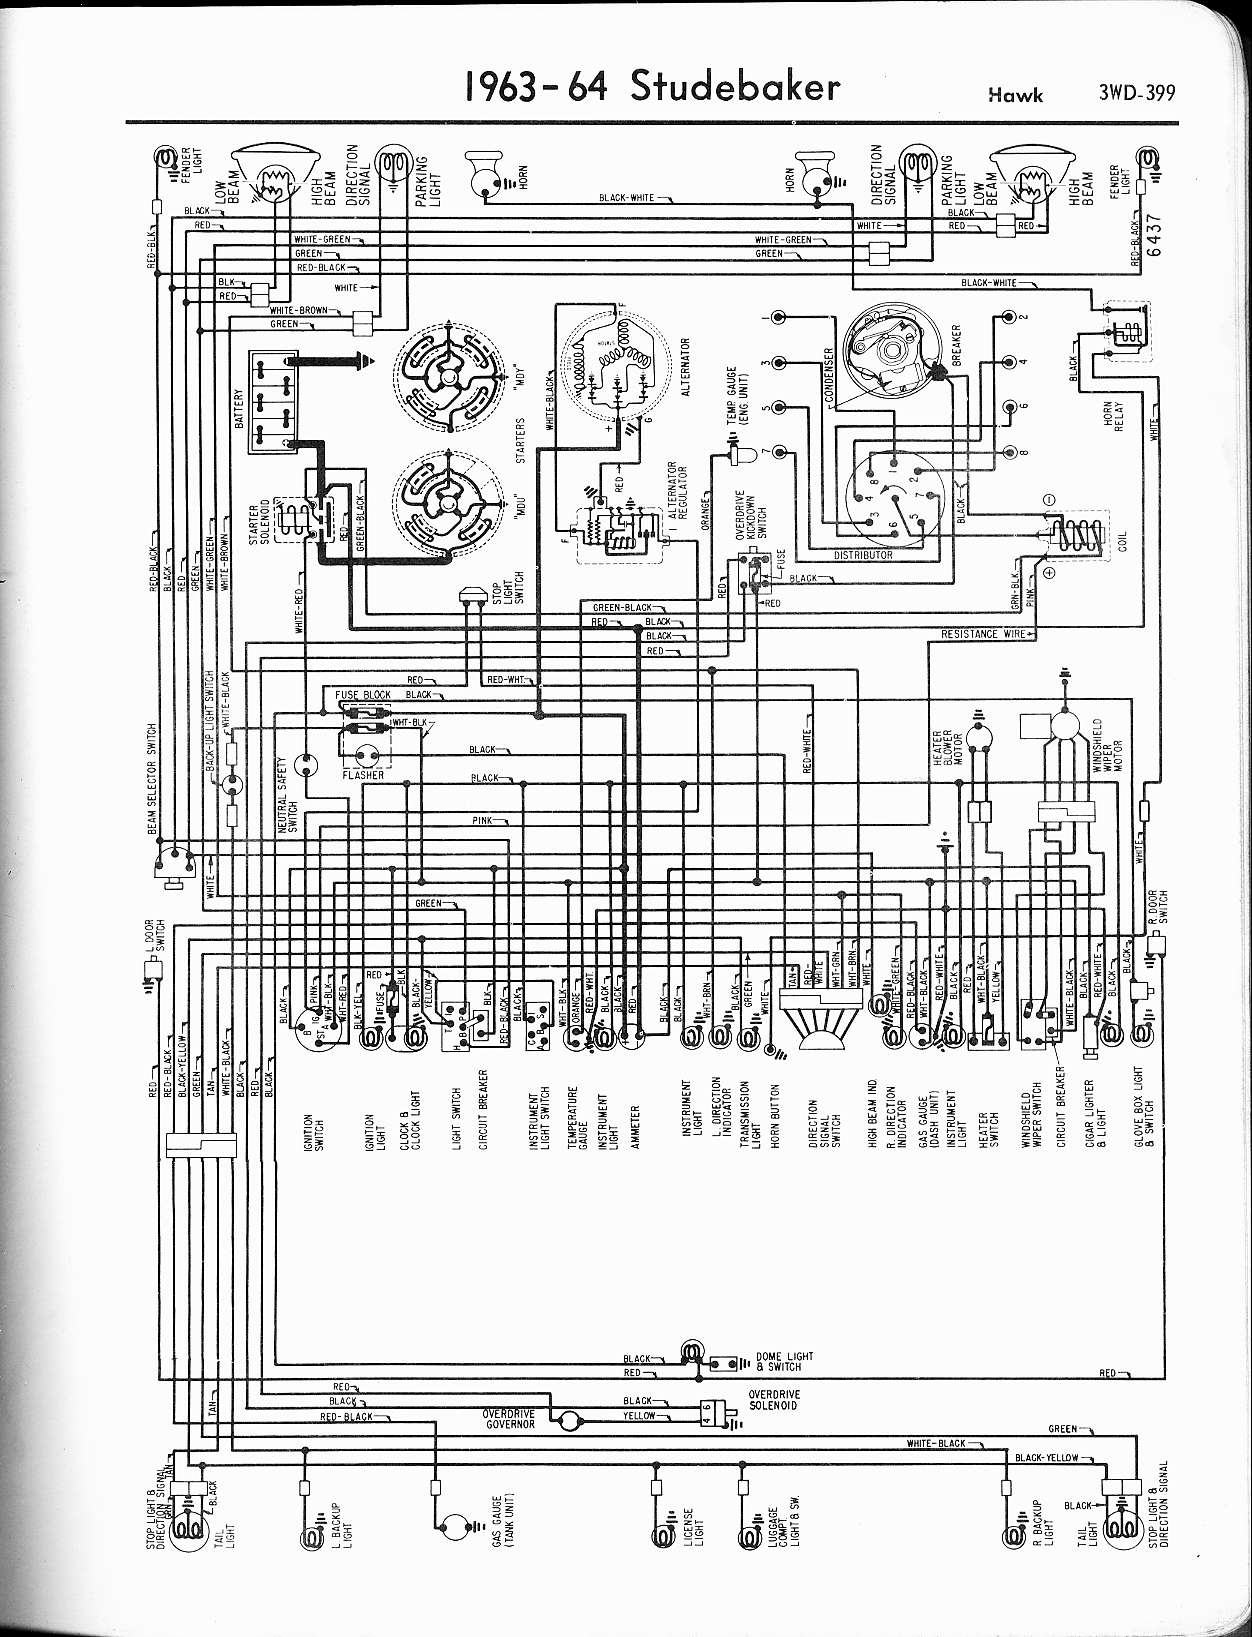 studebaker wiring diagrams the old car manual project 1963 64 hawk